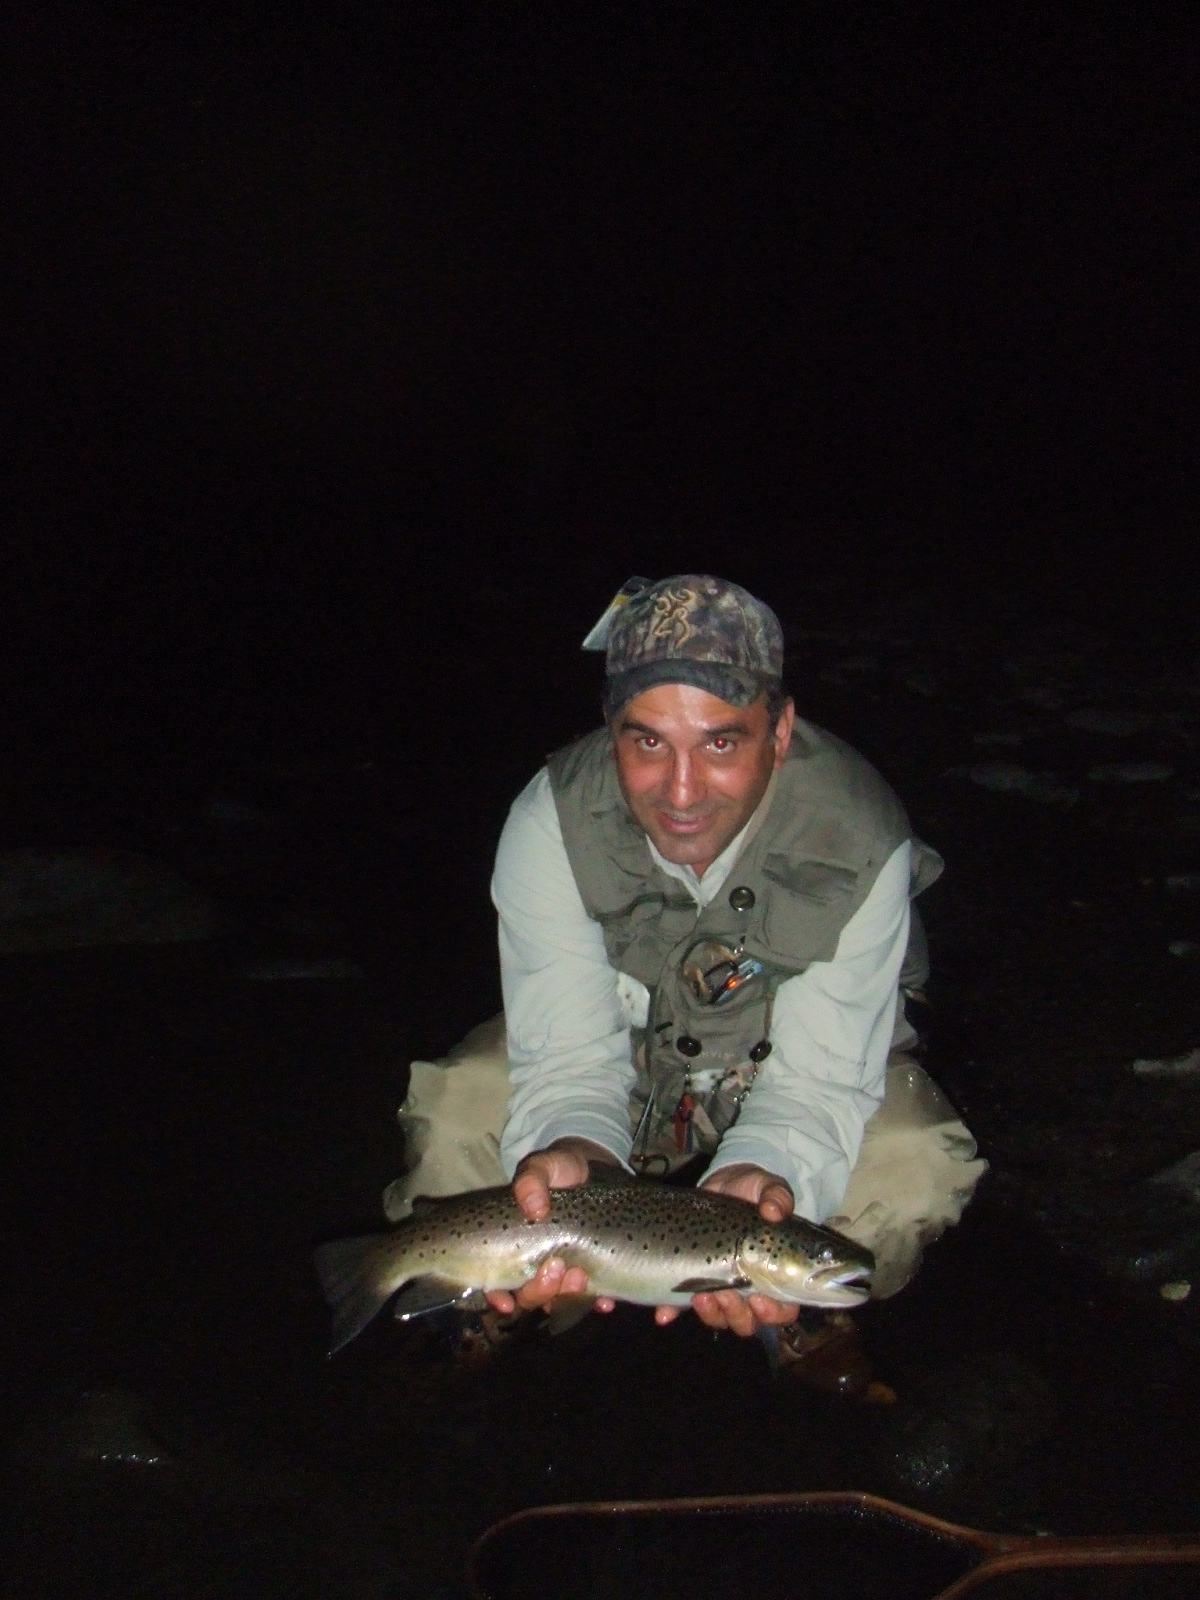 Night Fly Fishing for Big Wild Brown Trout Guided Tours | Northeast PA Fly Fishing